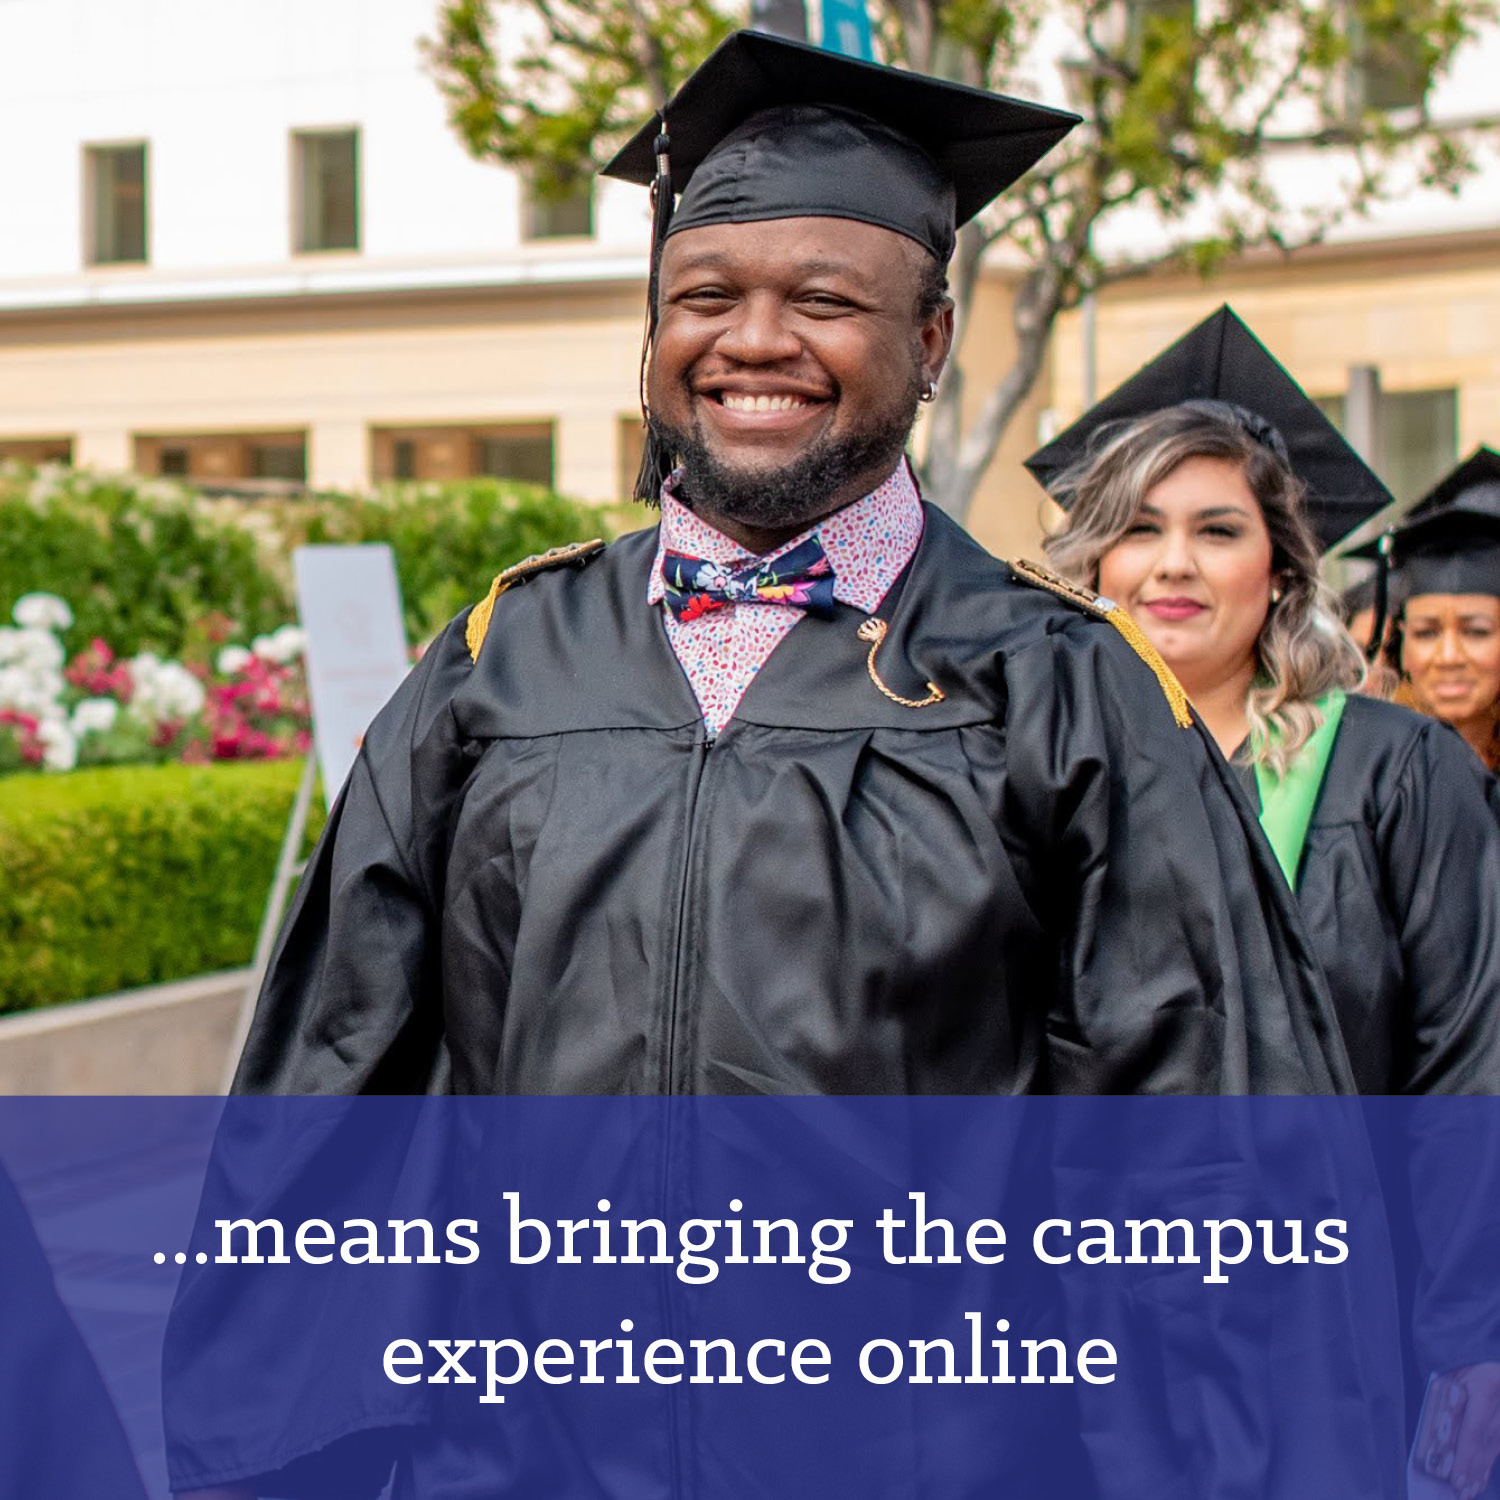 Campus experience online